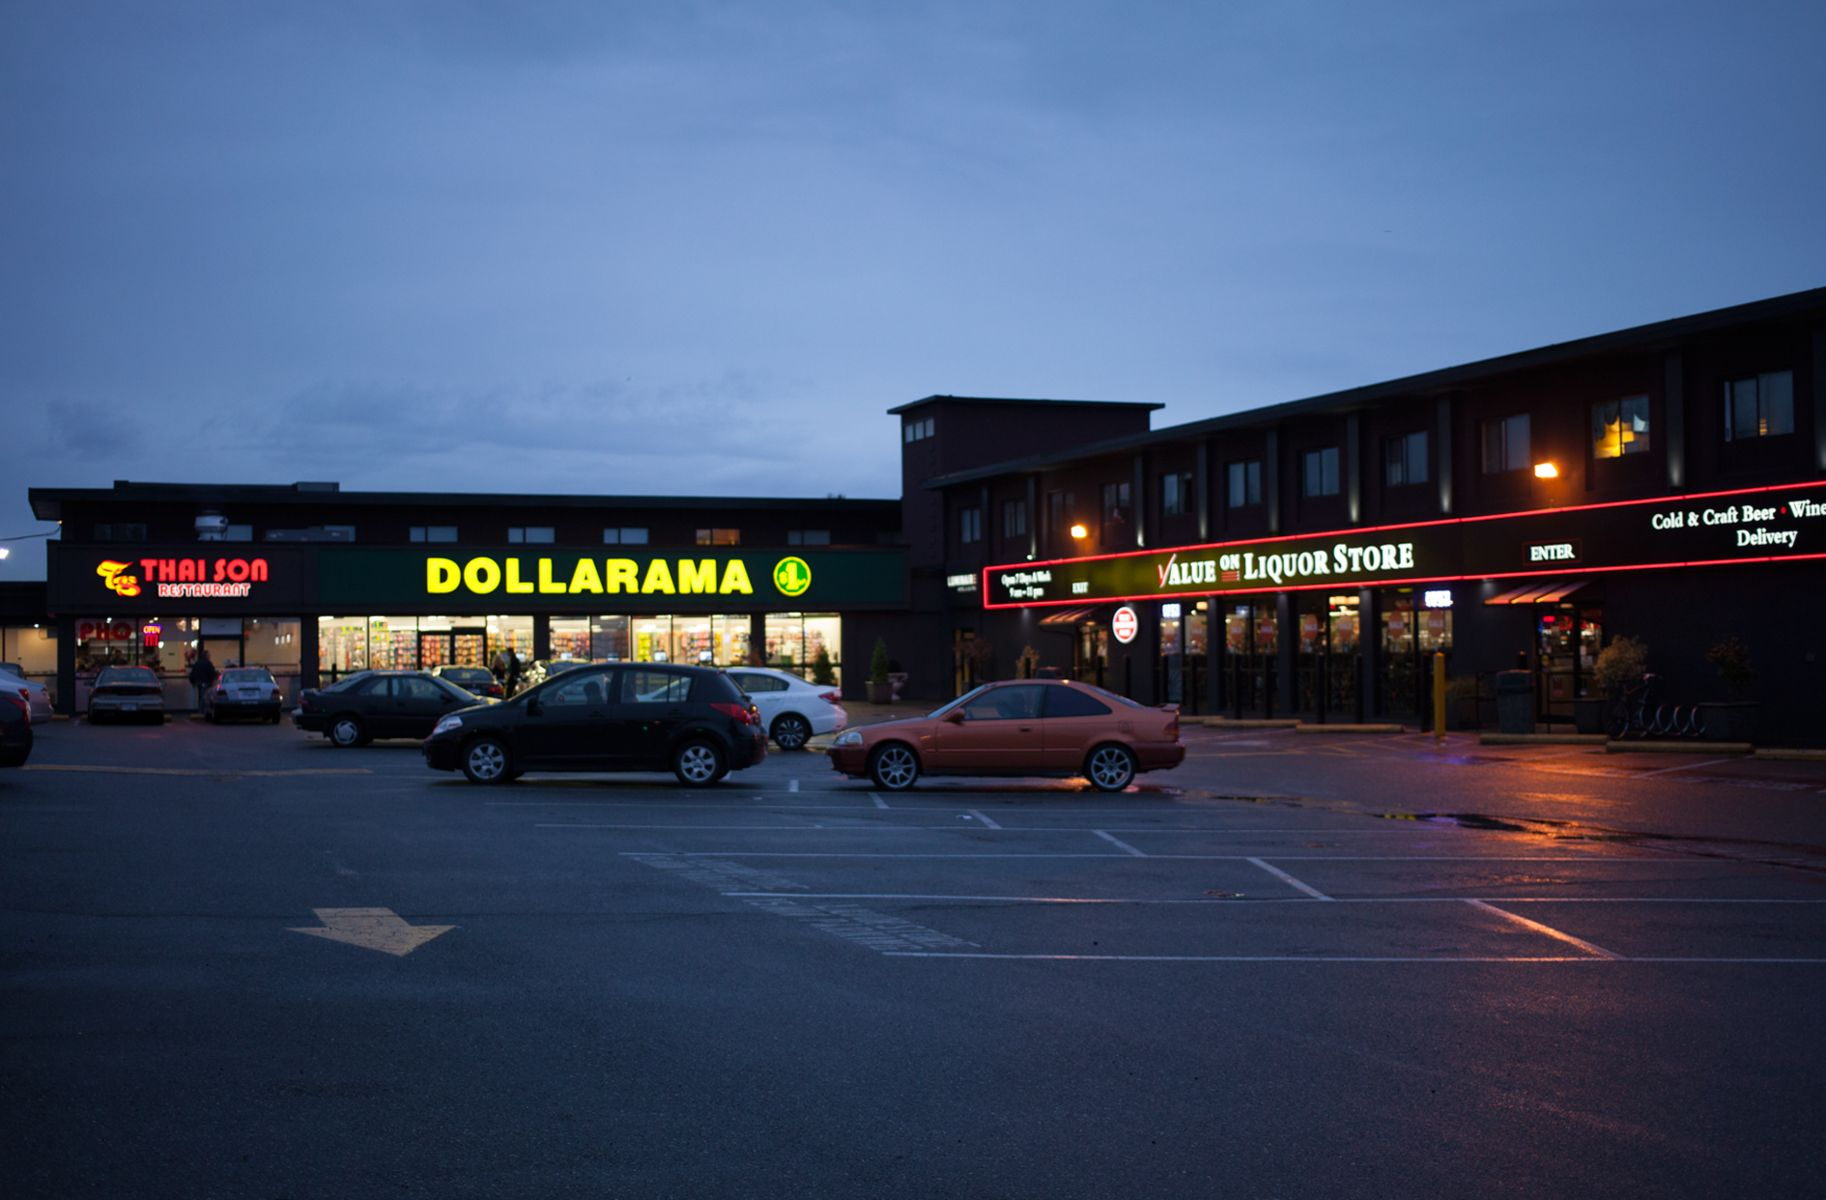 Parking lot at dusk, lit by the neon lights of surrounding stores, like Dollarama.